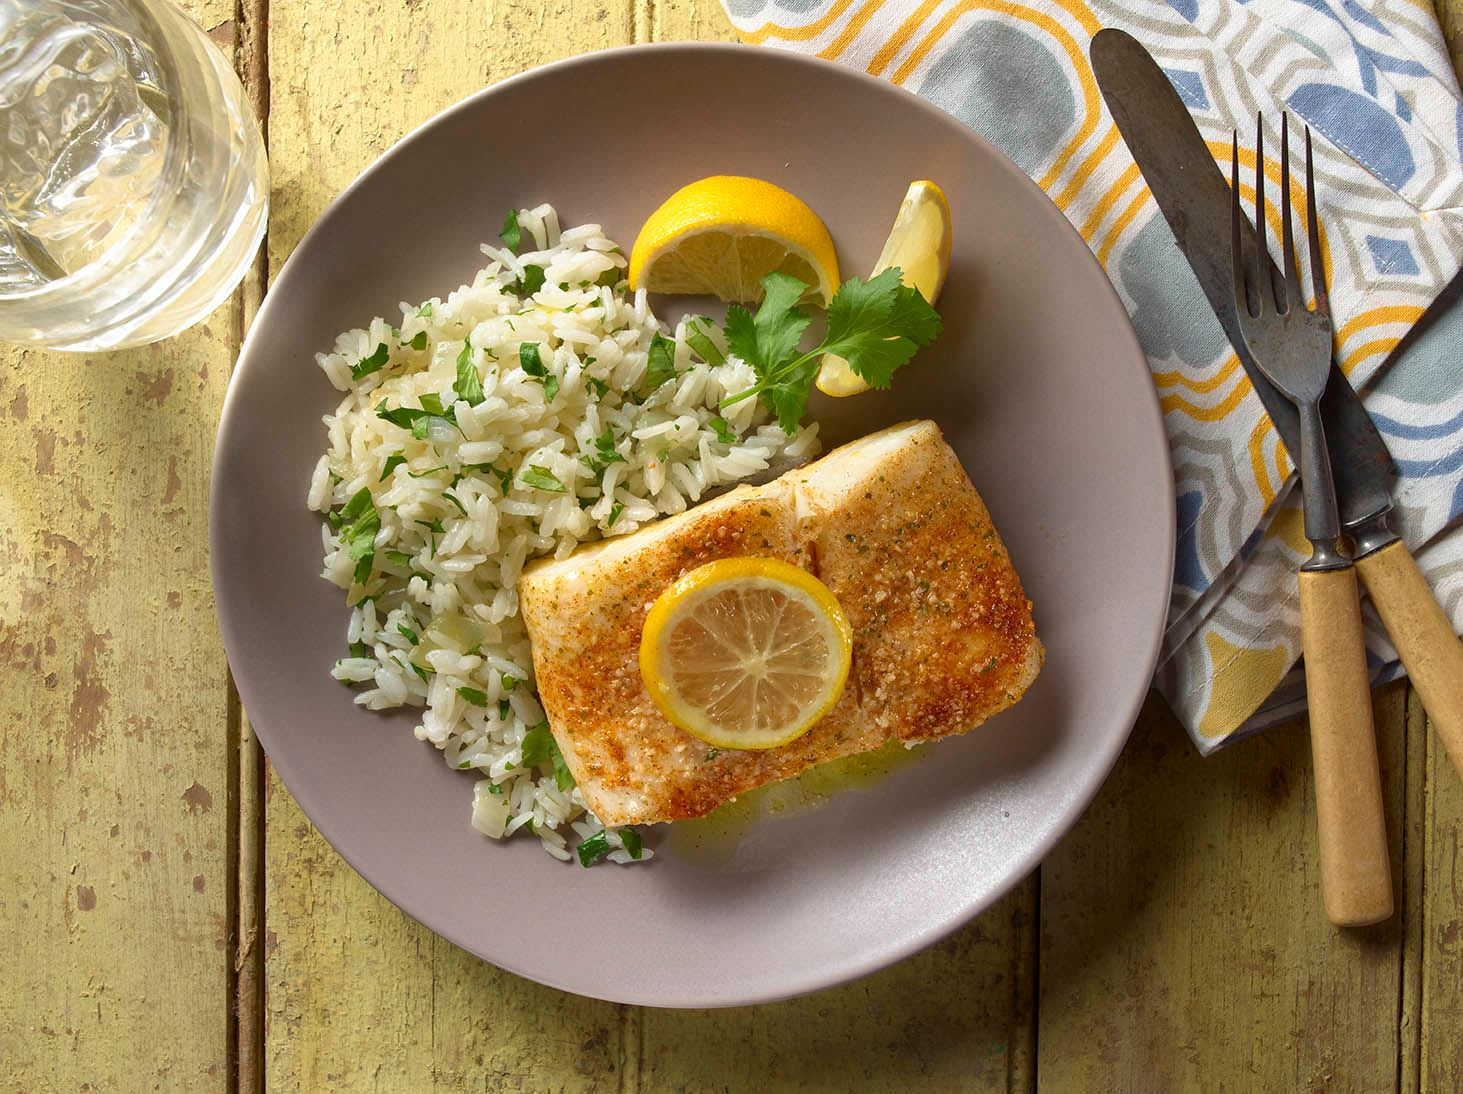 Lemon-Cilantro Steamed Halibut with Herbed Jasmine Rice